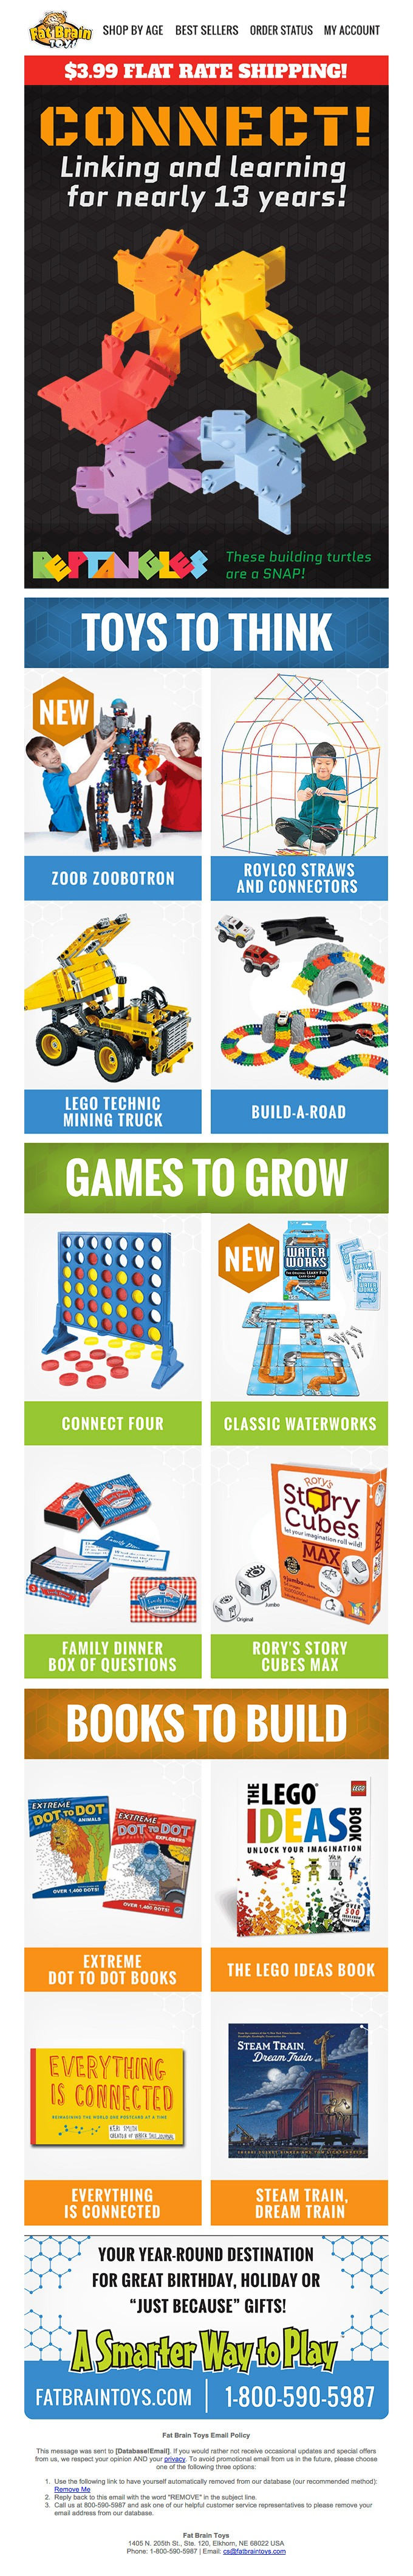 CONNECT! Linking and learning for nearly 13 years. Over 8000, innovative and original toys & games.